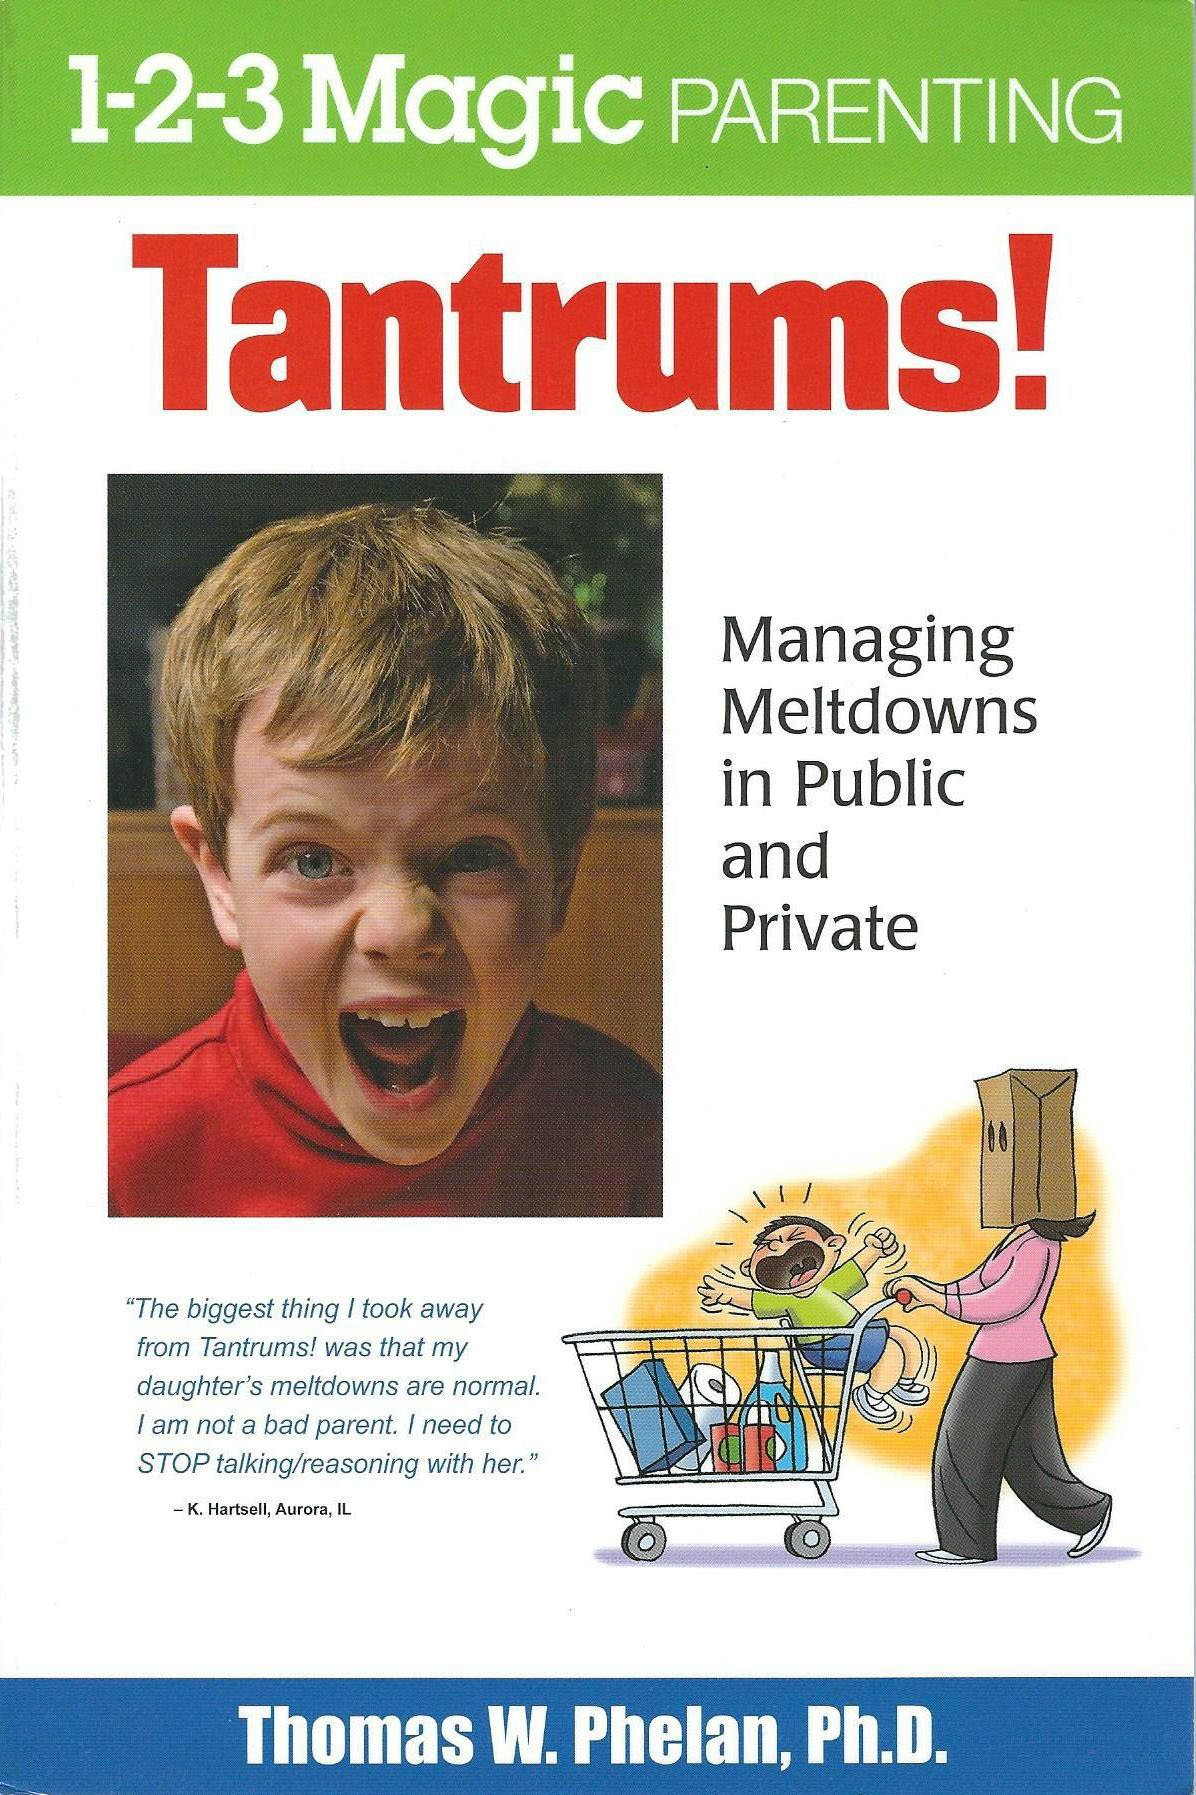 Managing Meltdowns in Public and Private (1-2-3 Magic Parenting): Thomas W.  Phelan: 9781889140698: Amazon.com: Books